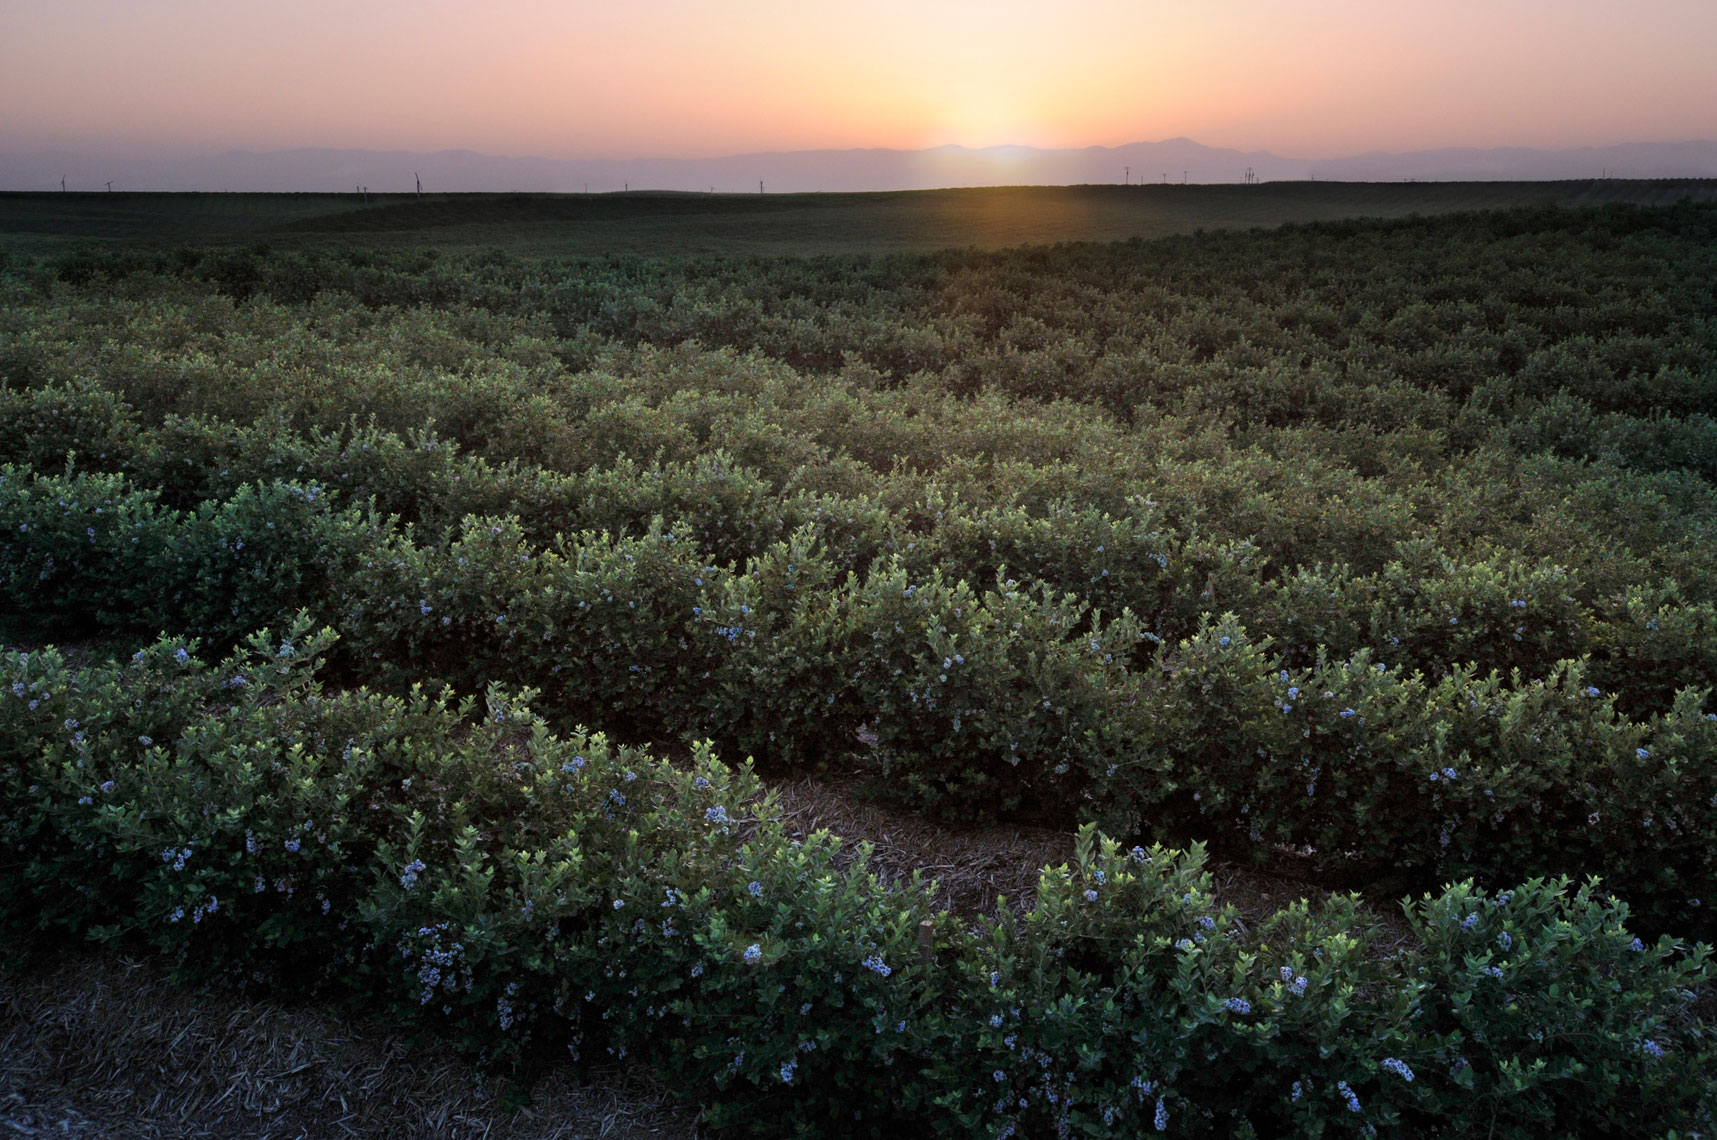 Blueberry-bush-fields-at-sunset-by-California-landscape-photographer-Joe-Atlas.